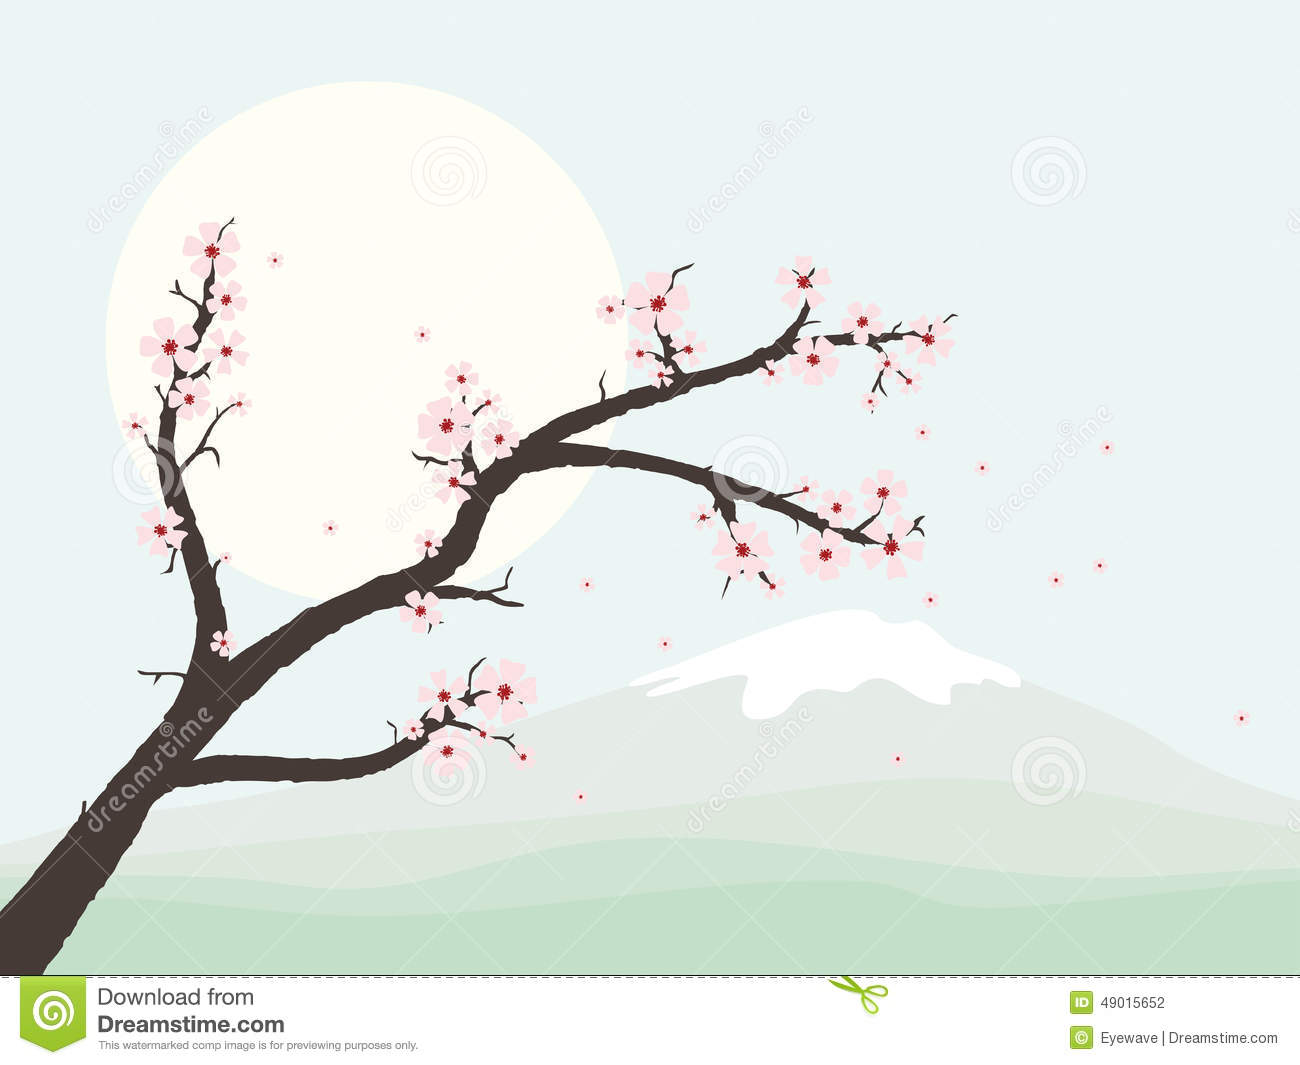 Landscape with cherry blossom branch vector illustration